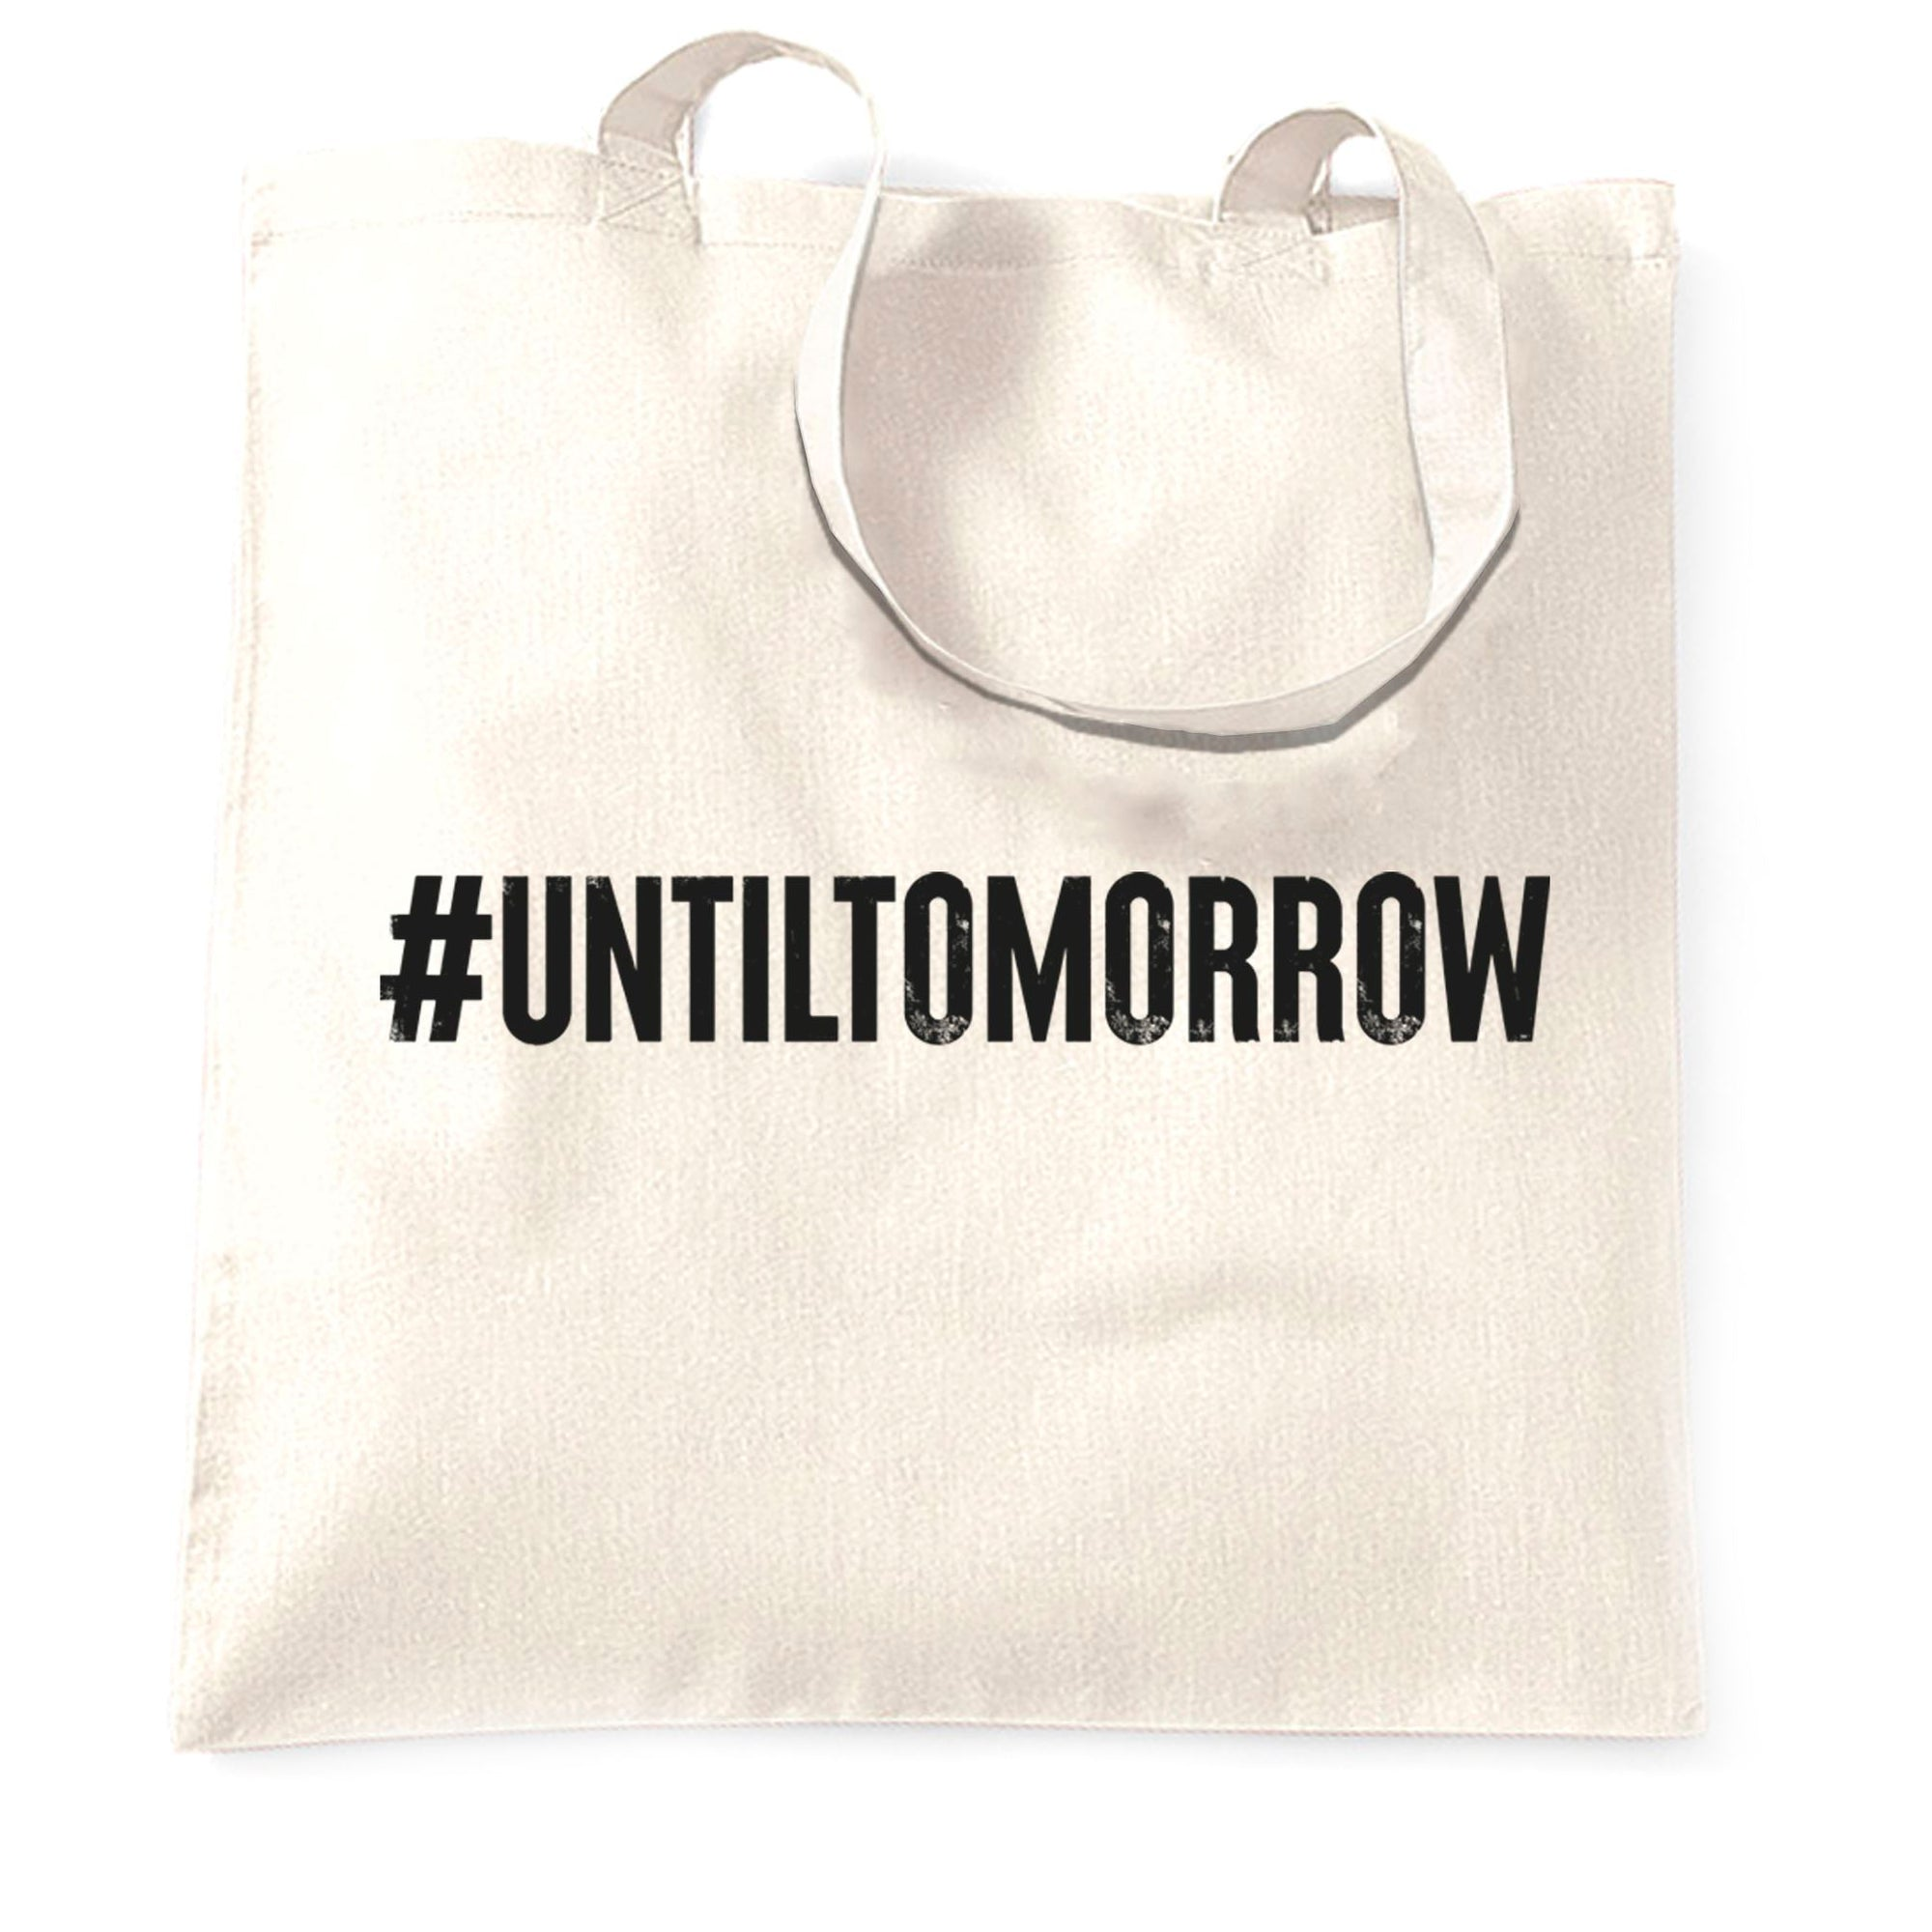 Until Tomorrow Tote Bag #UntilTomorrow Internet Trend